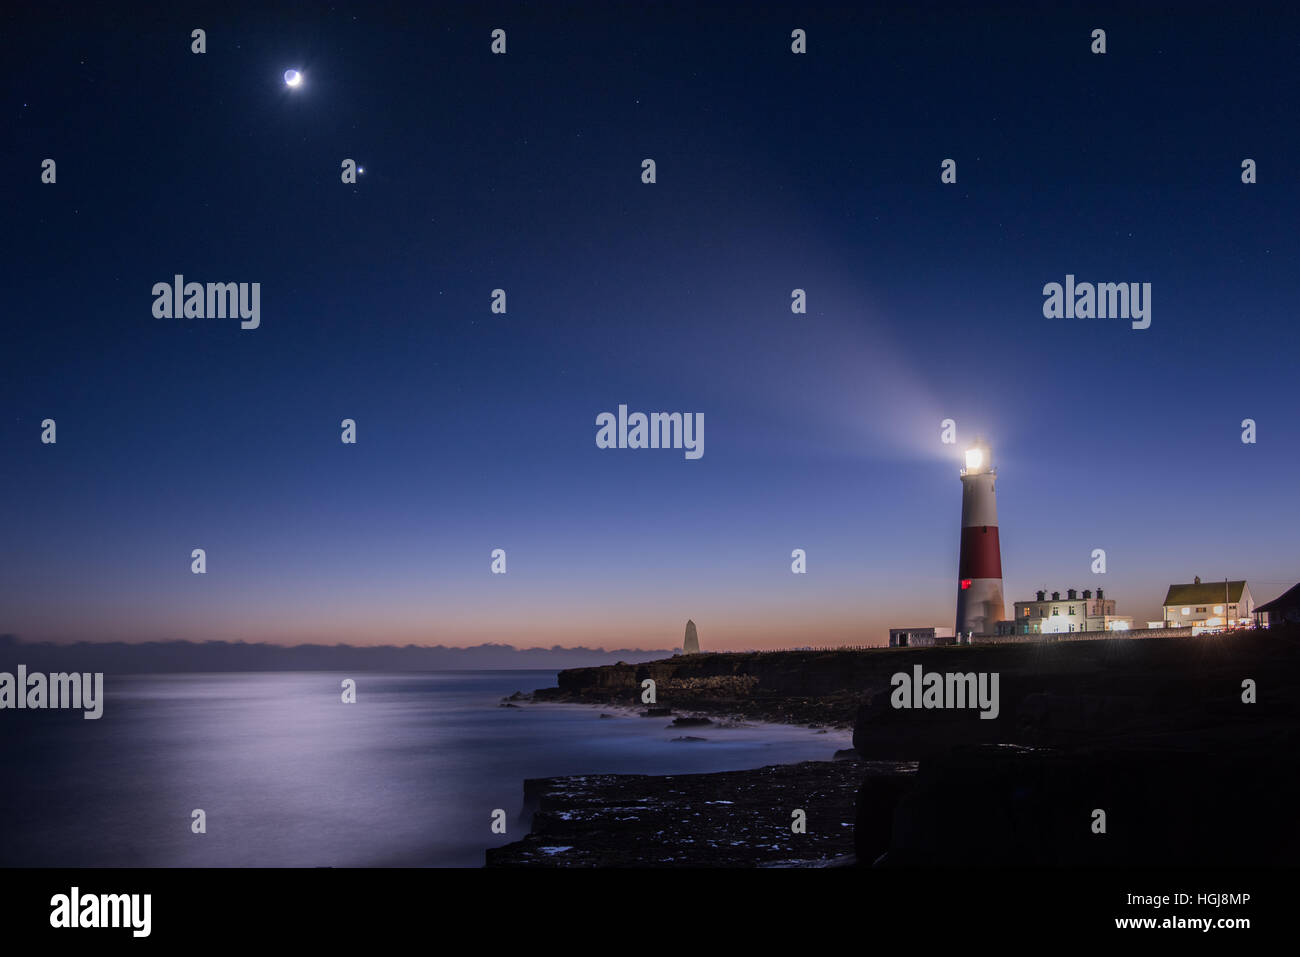 Portland Bill Lighthouse Nightscape with the Moon and planets Venus and Mars - Stock Image